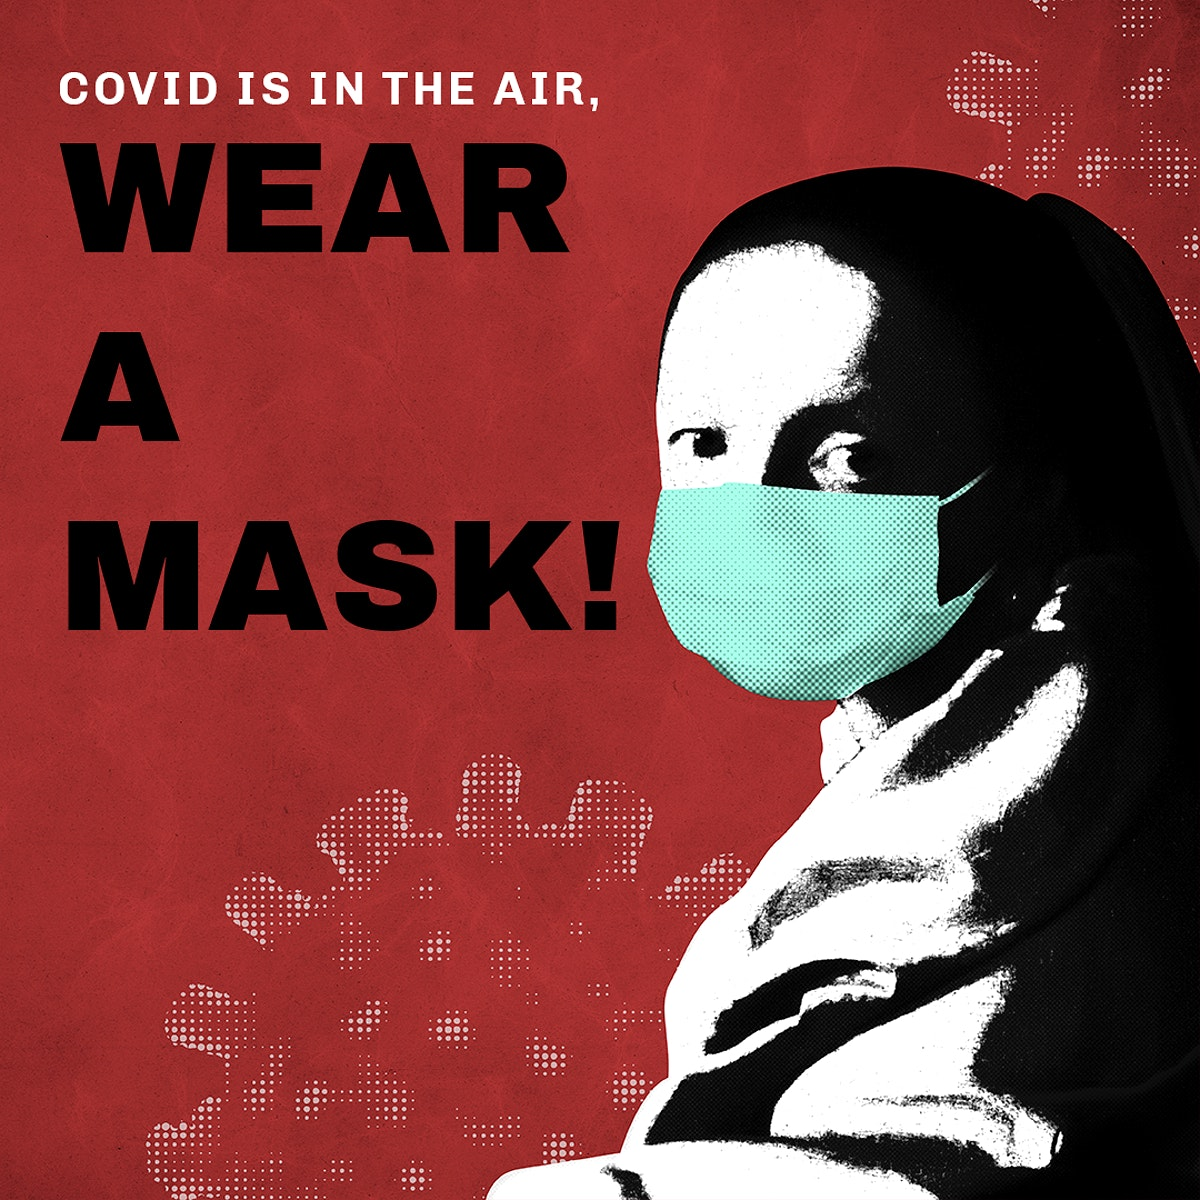 Johannes Vermeer's young woman wearing a face mask during coronavirus pandemic public domain remix